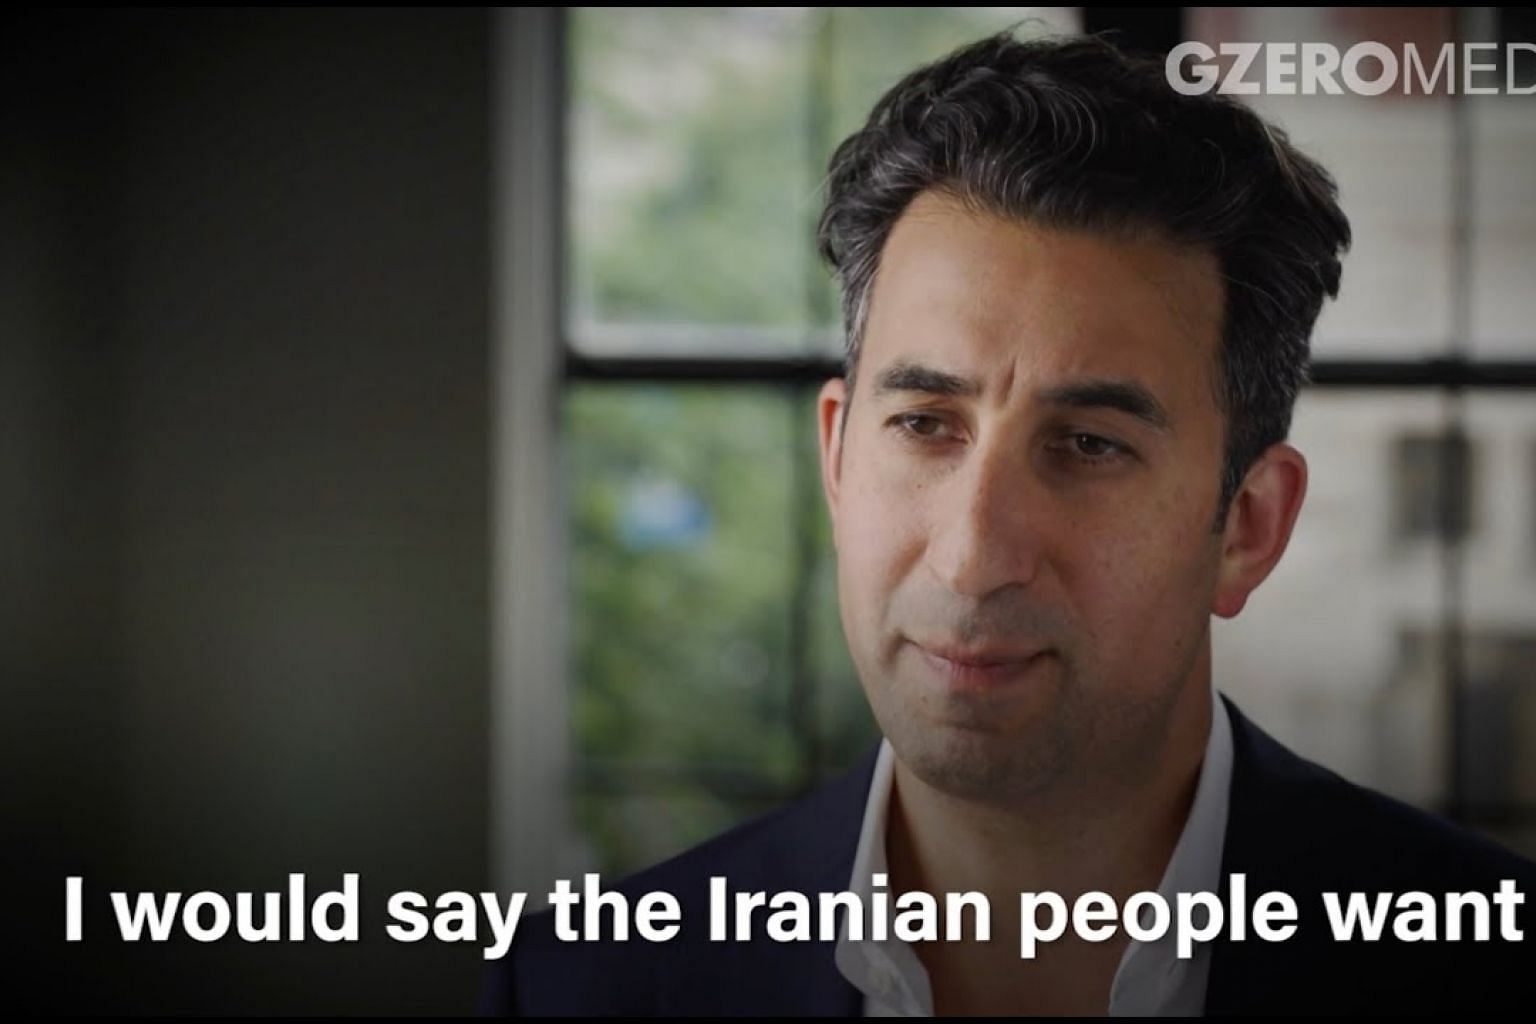 The Iranian people want to be South Korea, not North Korea